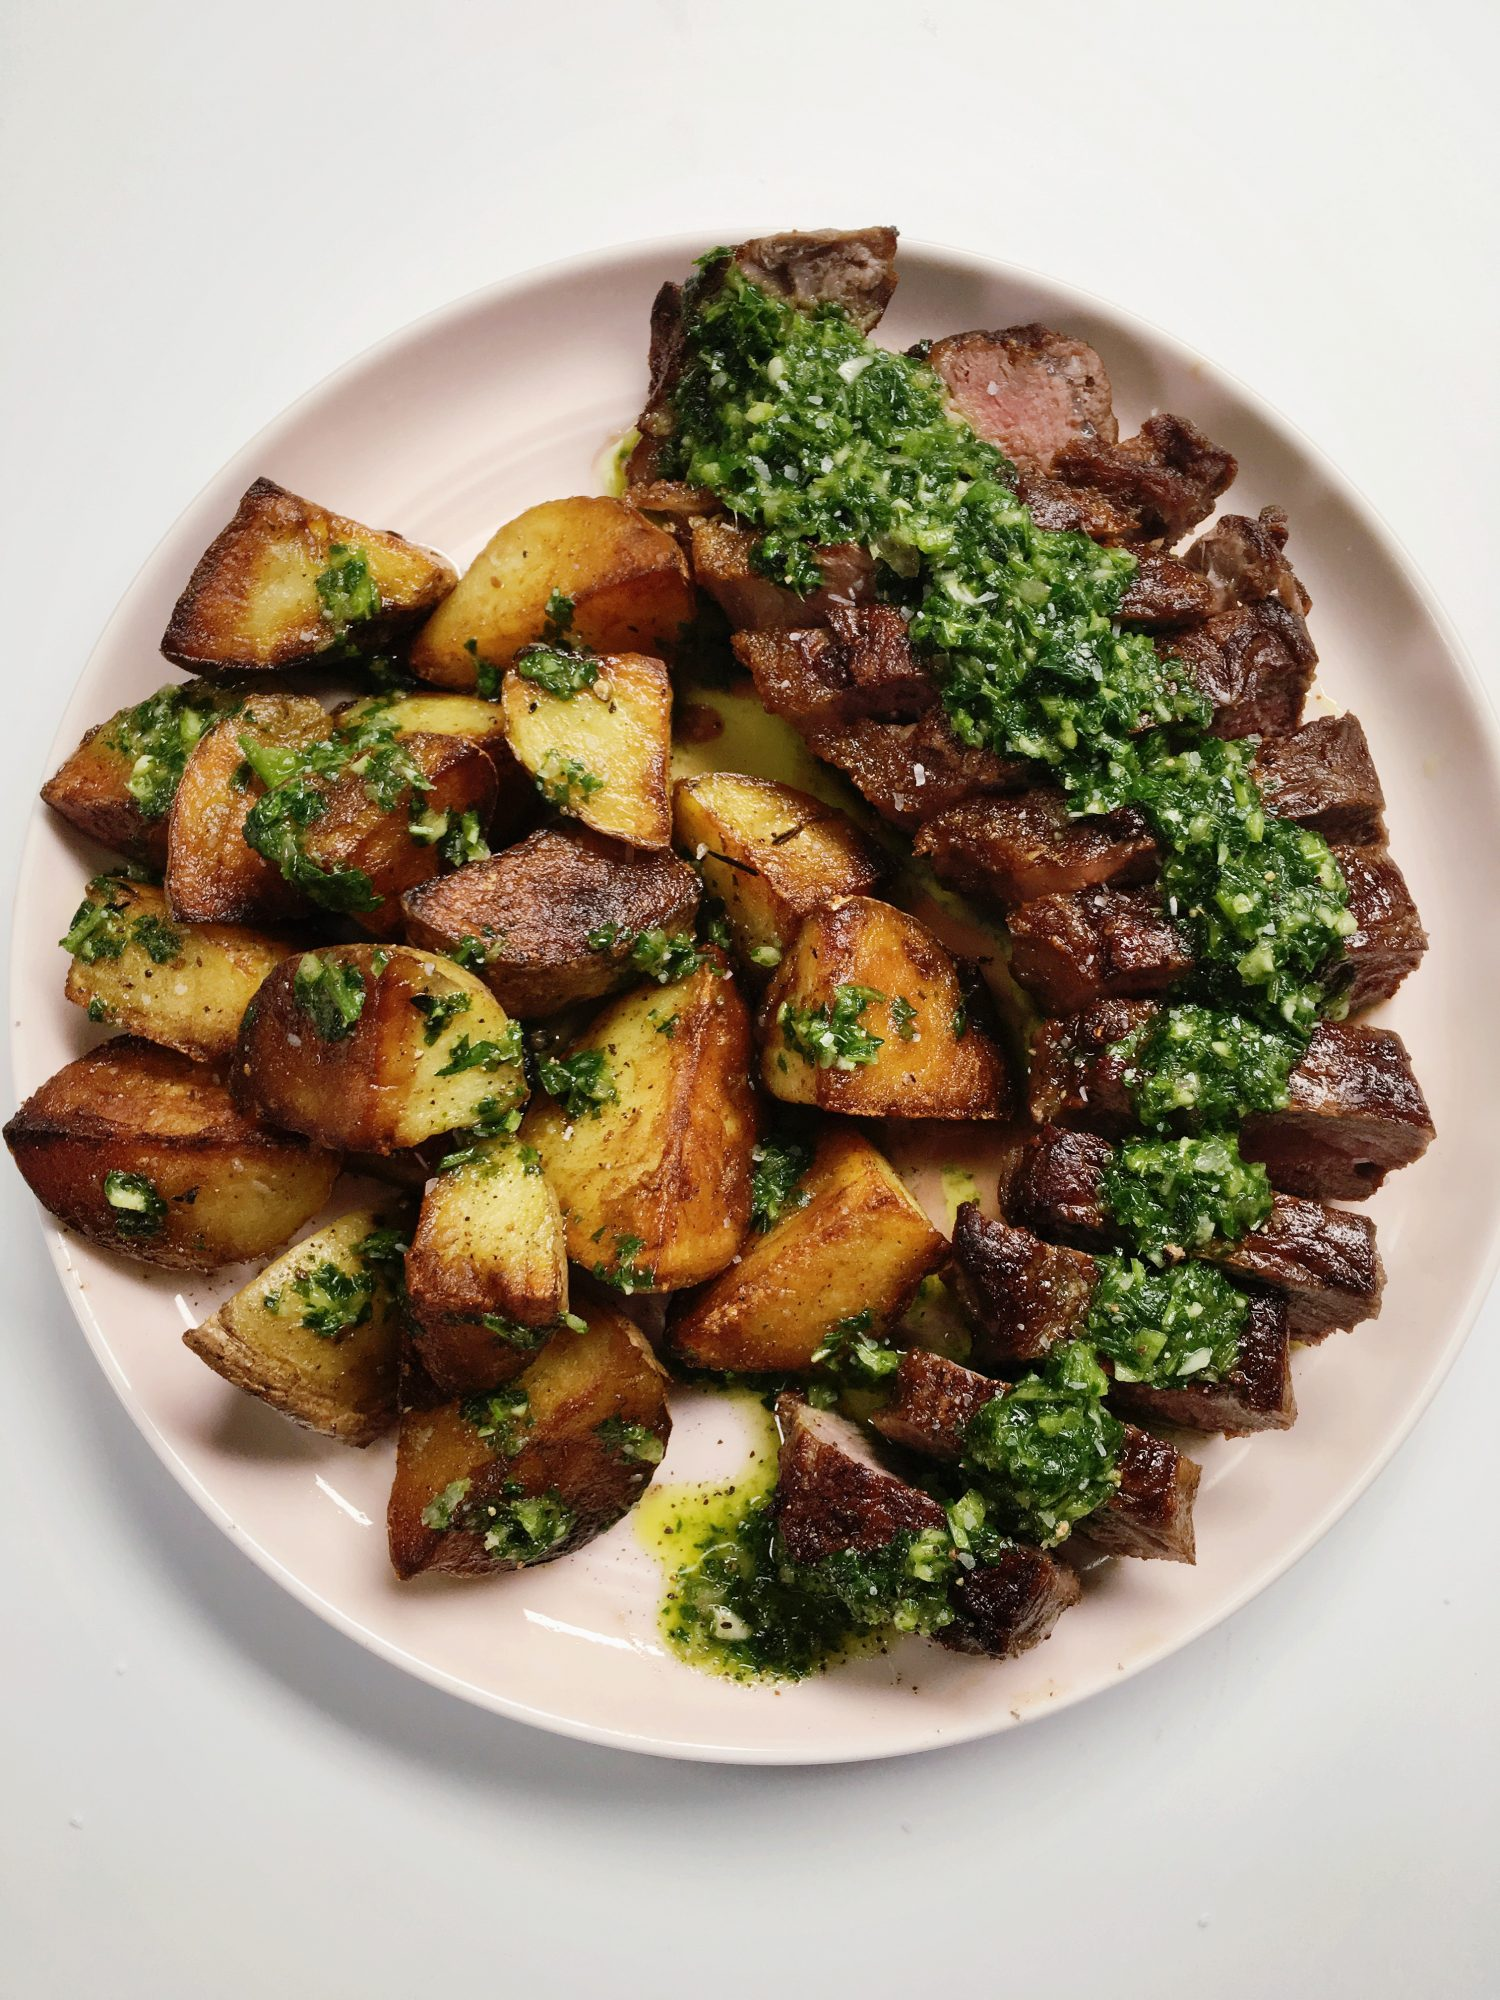 This Steak Dinner is The Easiest, Best-Looking Meal You'll Cook All Week